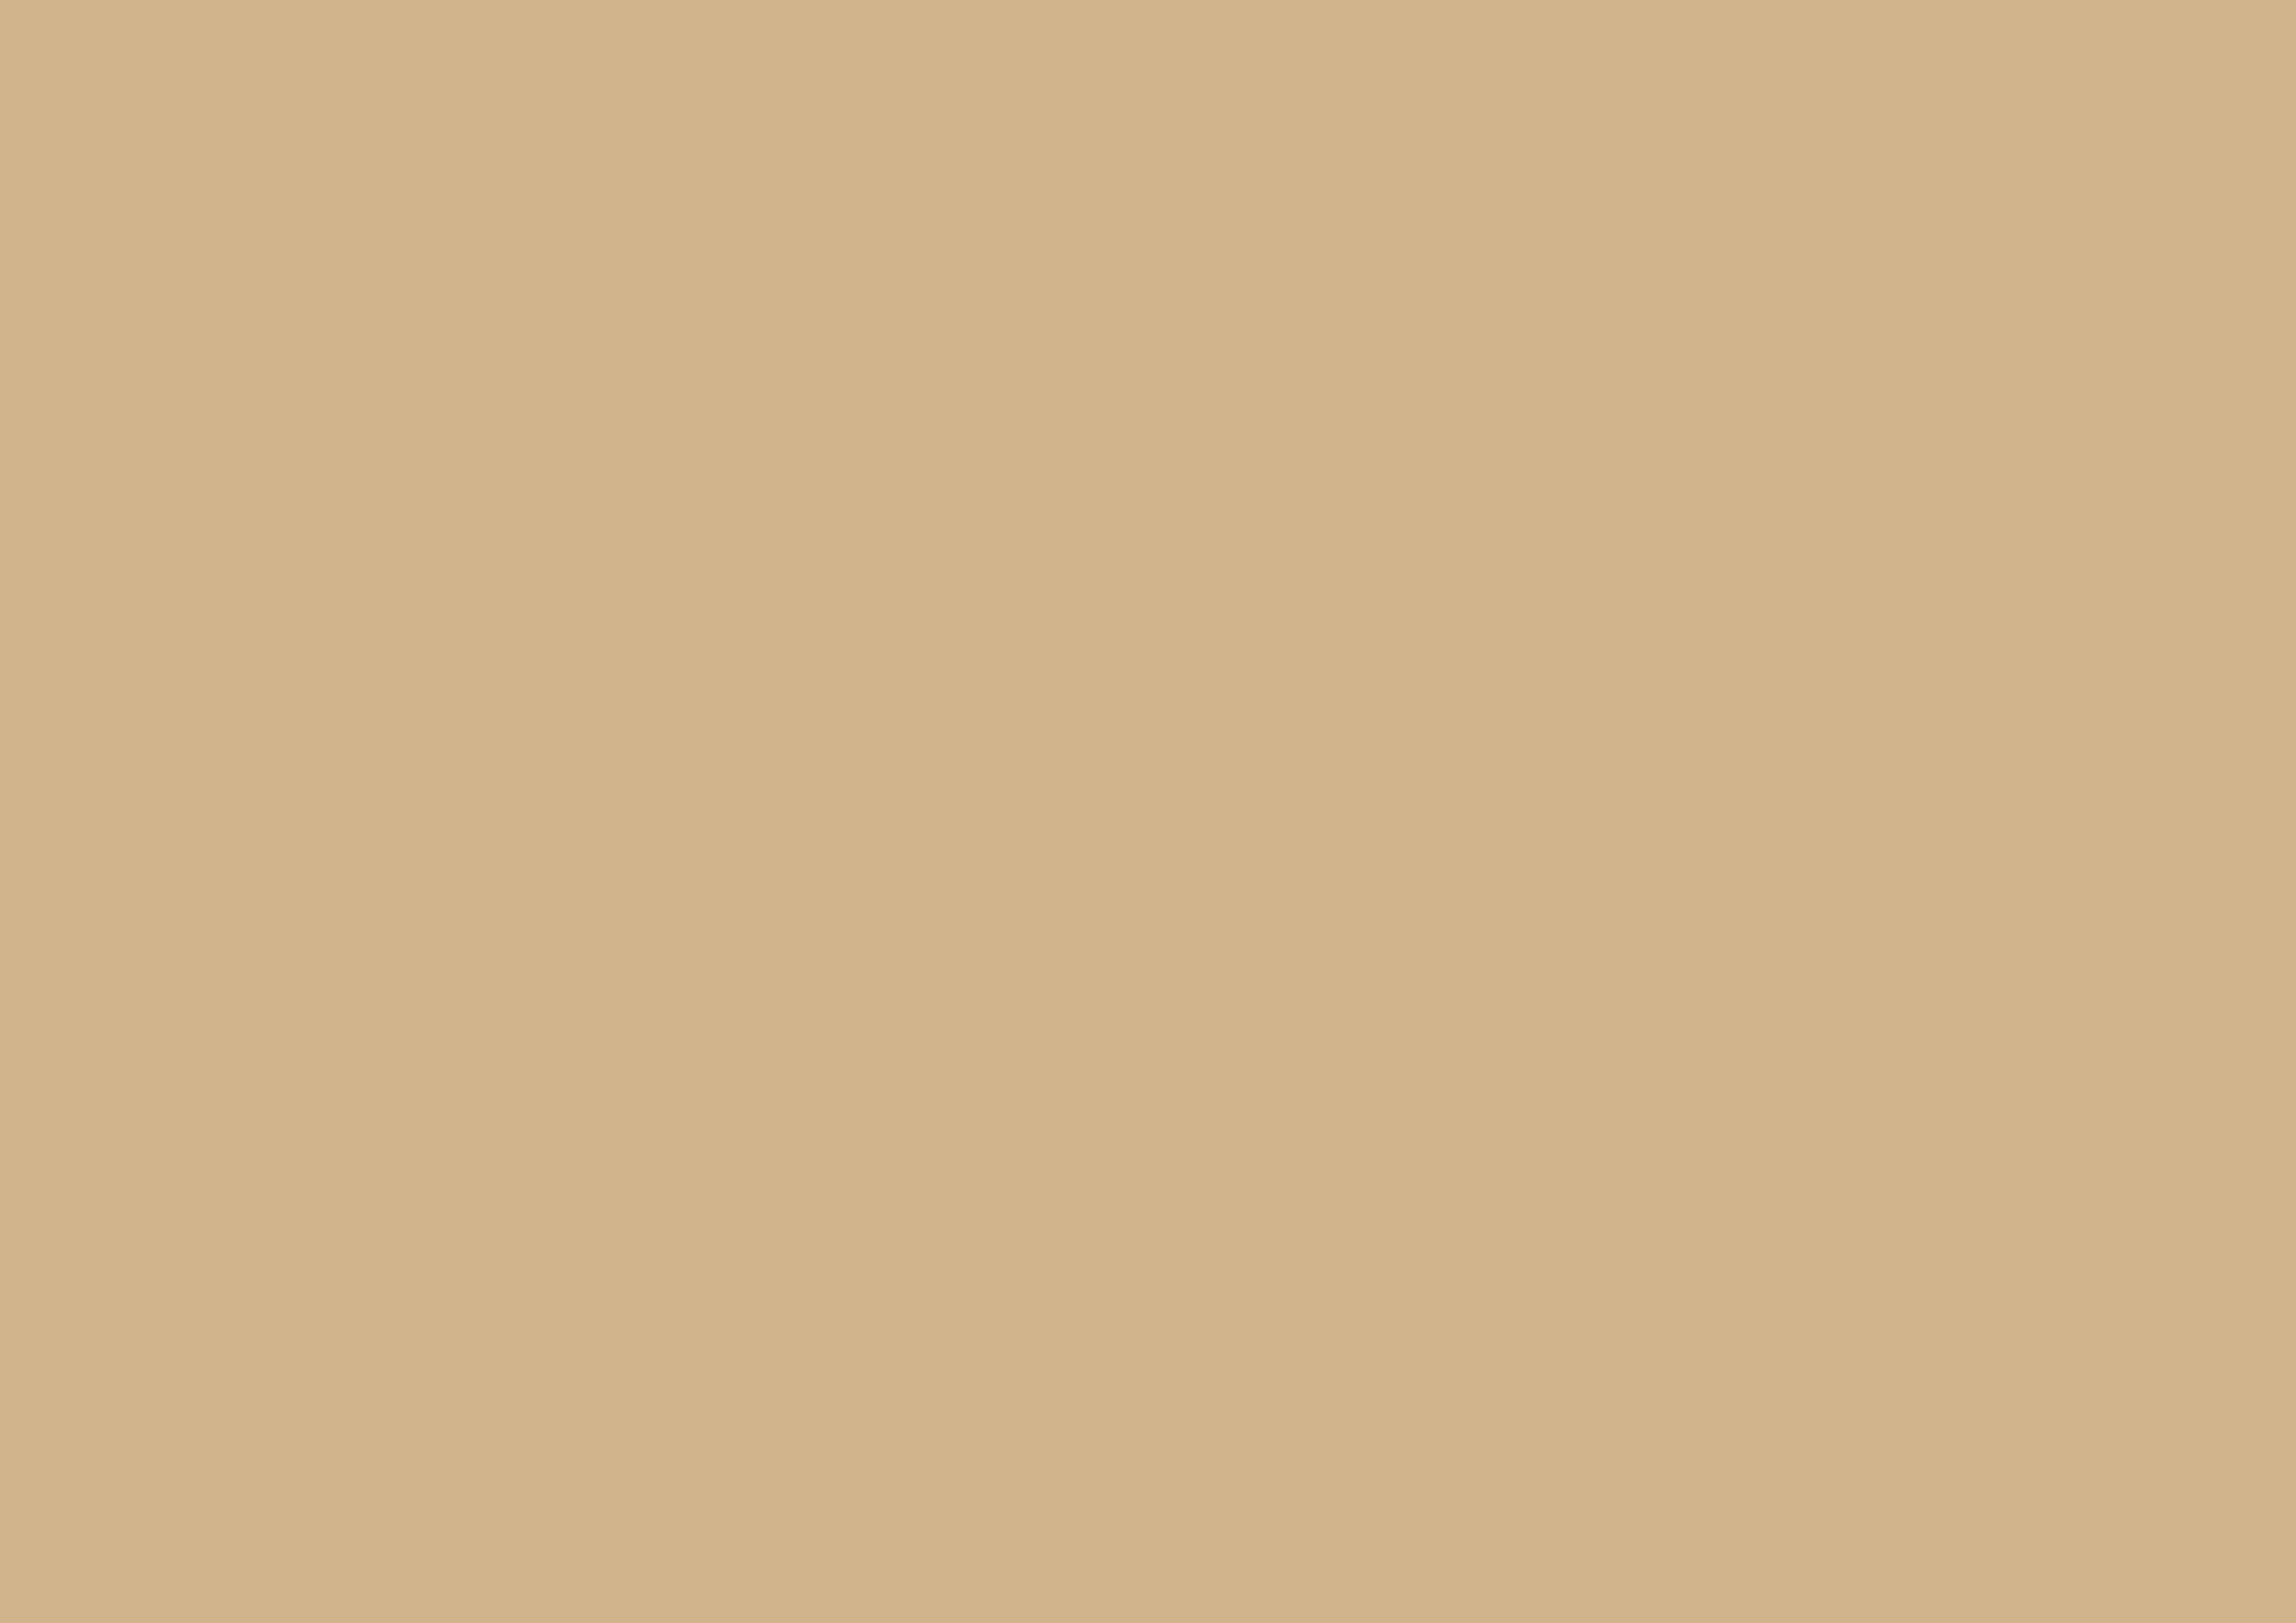 3508x2480 Tan Solid Color Background